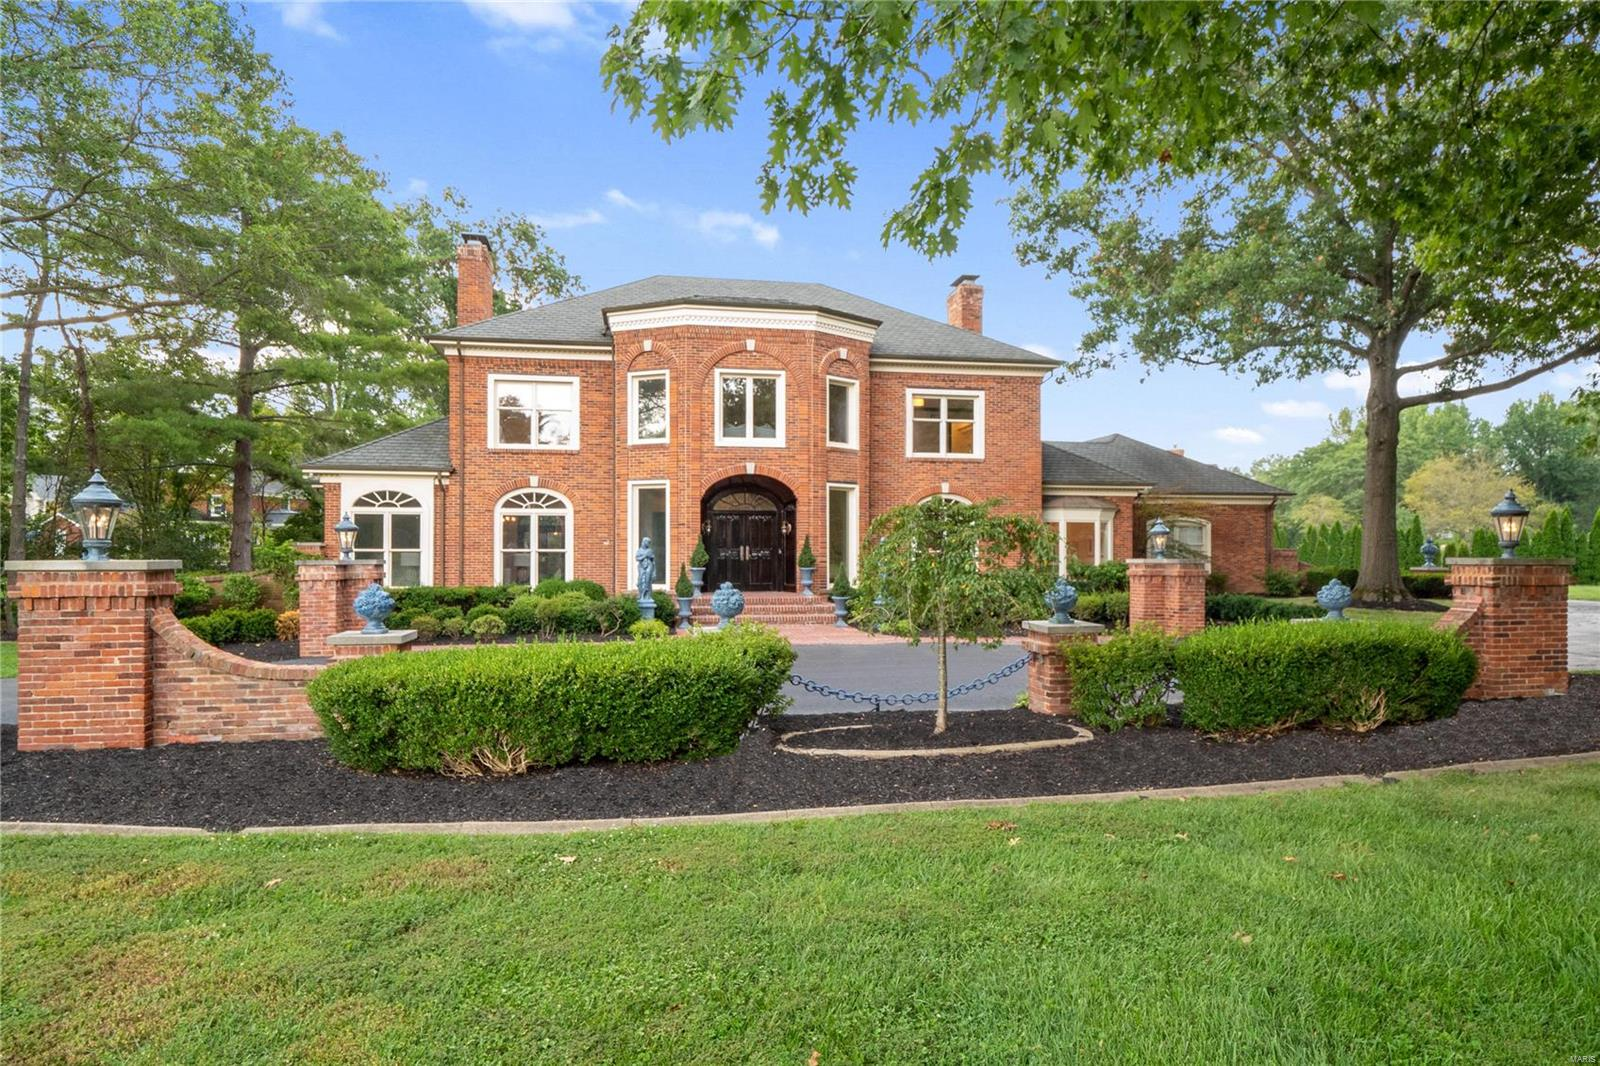 120 Bryn Wyck Place, Town and Country, MO 63141